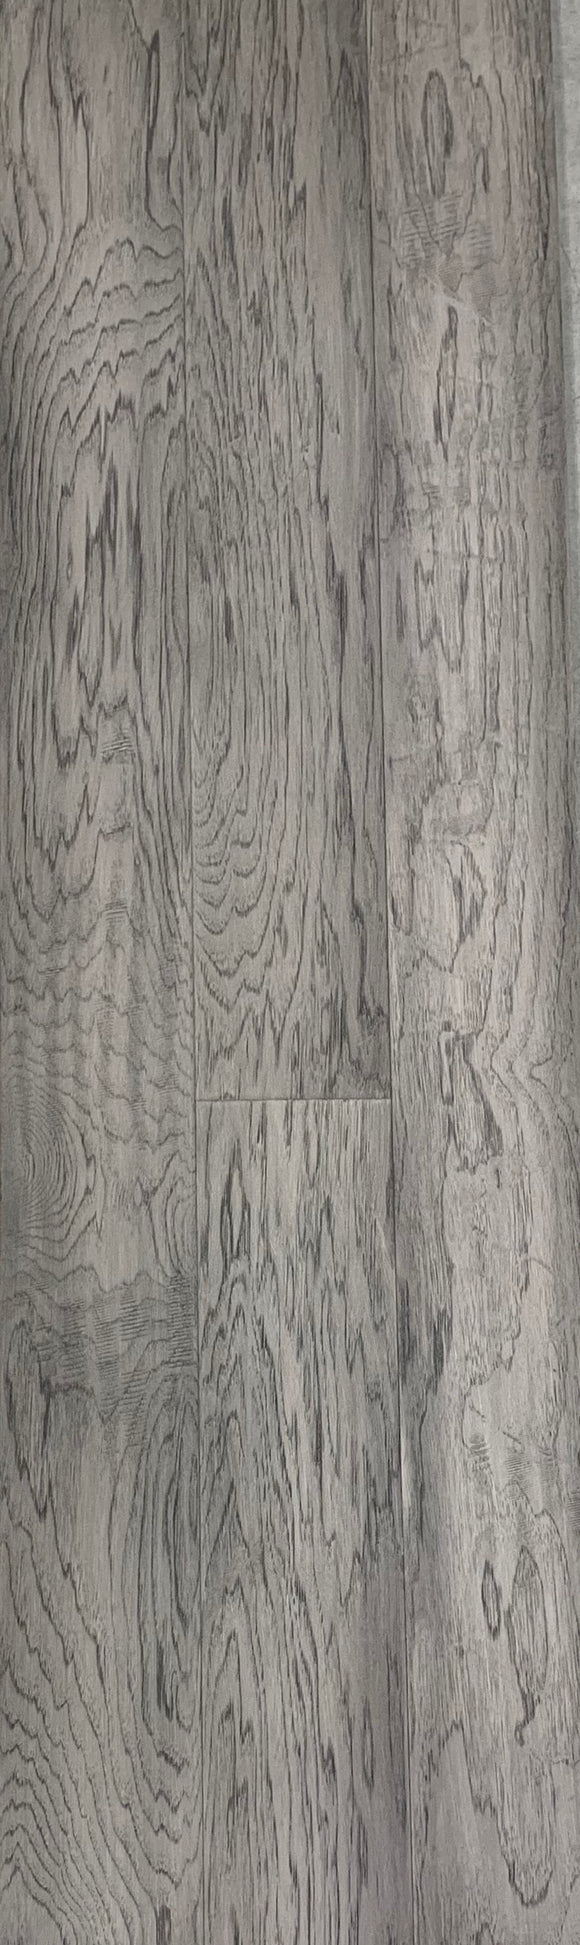 Engineered Hickory - Pewter $5.99/sf 19.18 sf/box